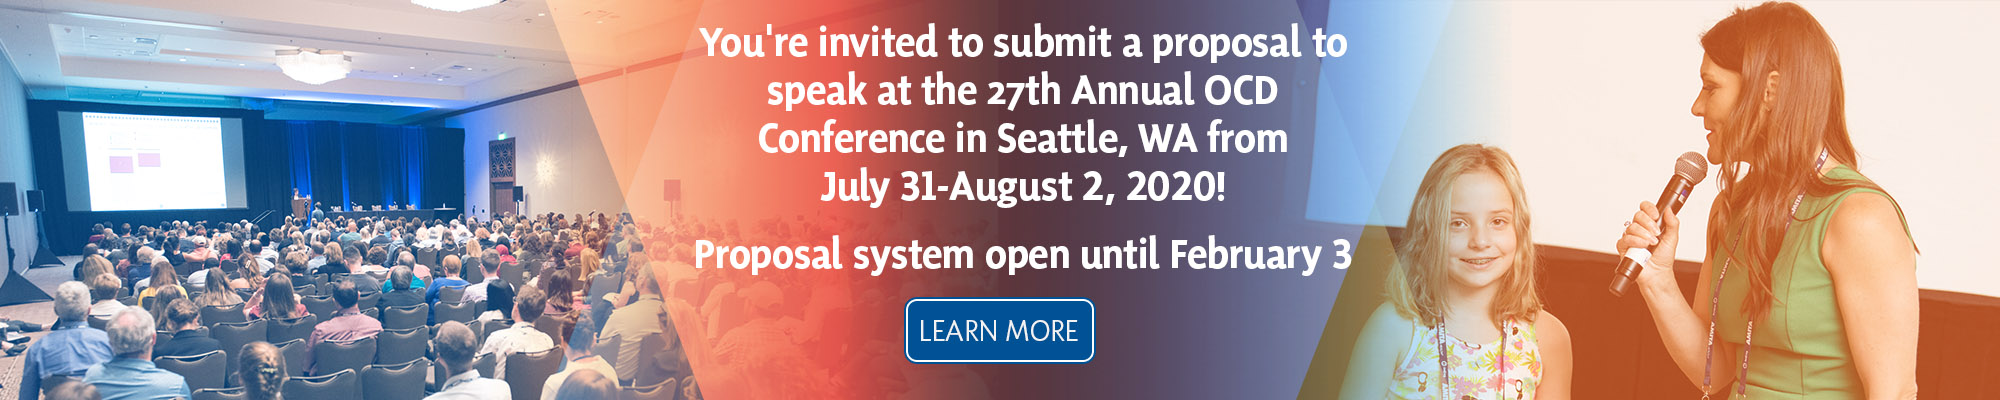 Submit a proposal for the 27th Annual OCD Conference. July 31-August 2, 2020 in Seattle, WA